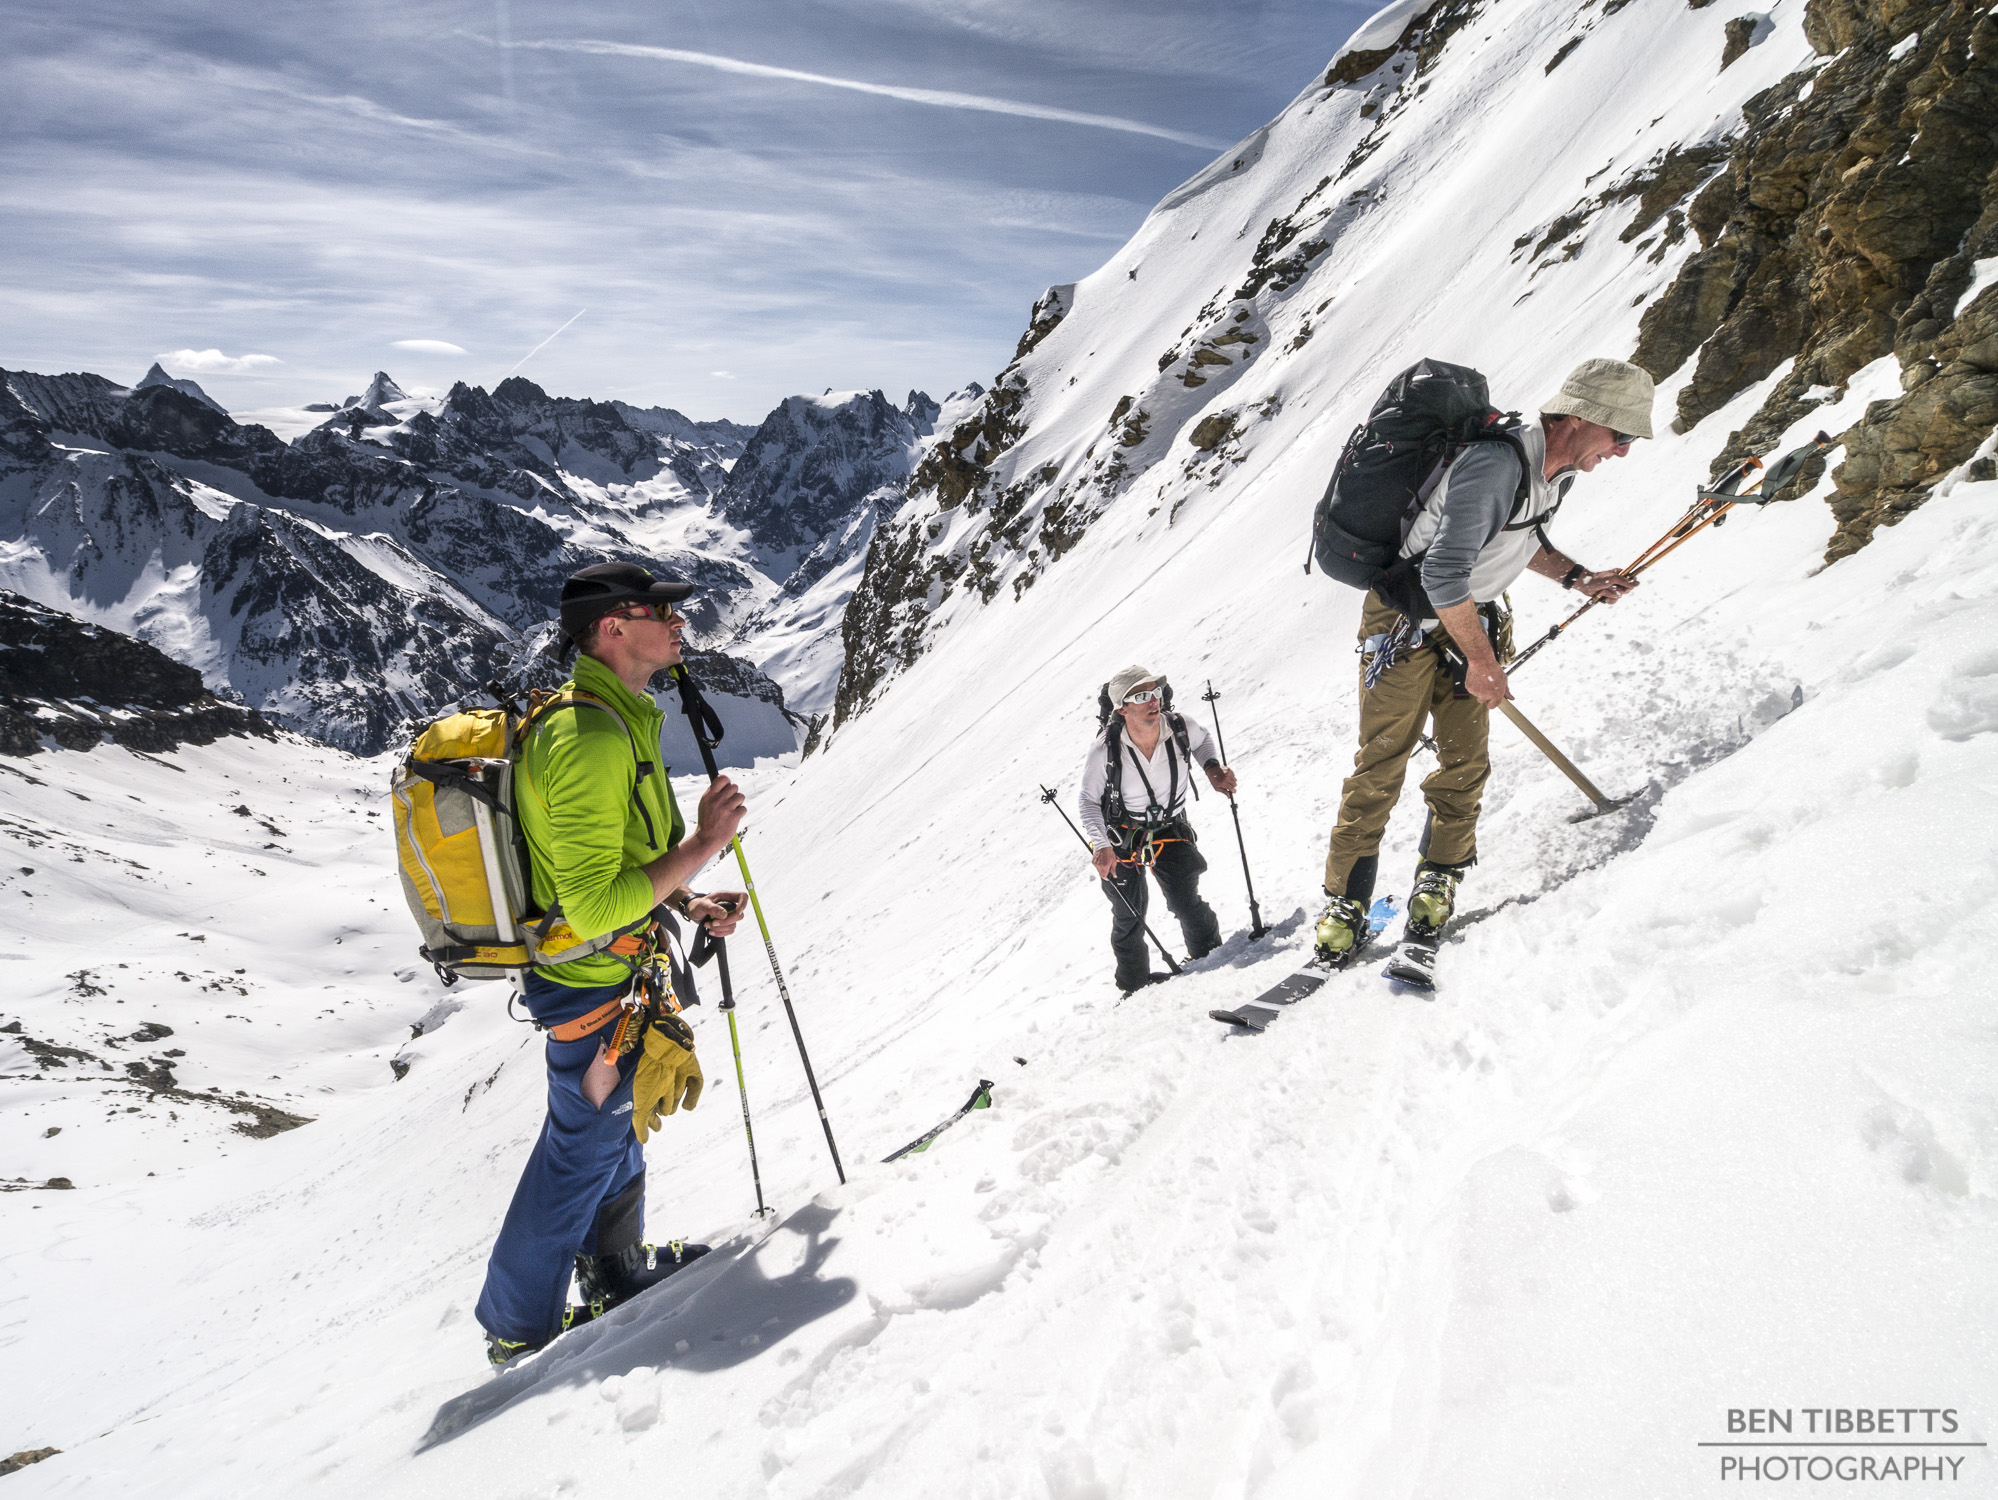 BMG ski touring training